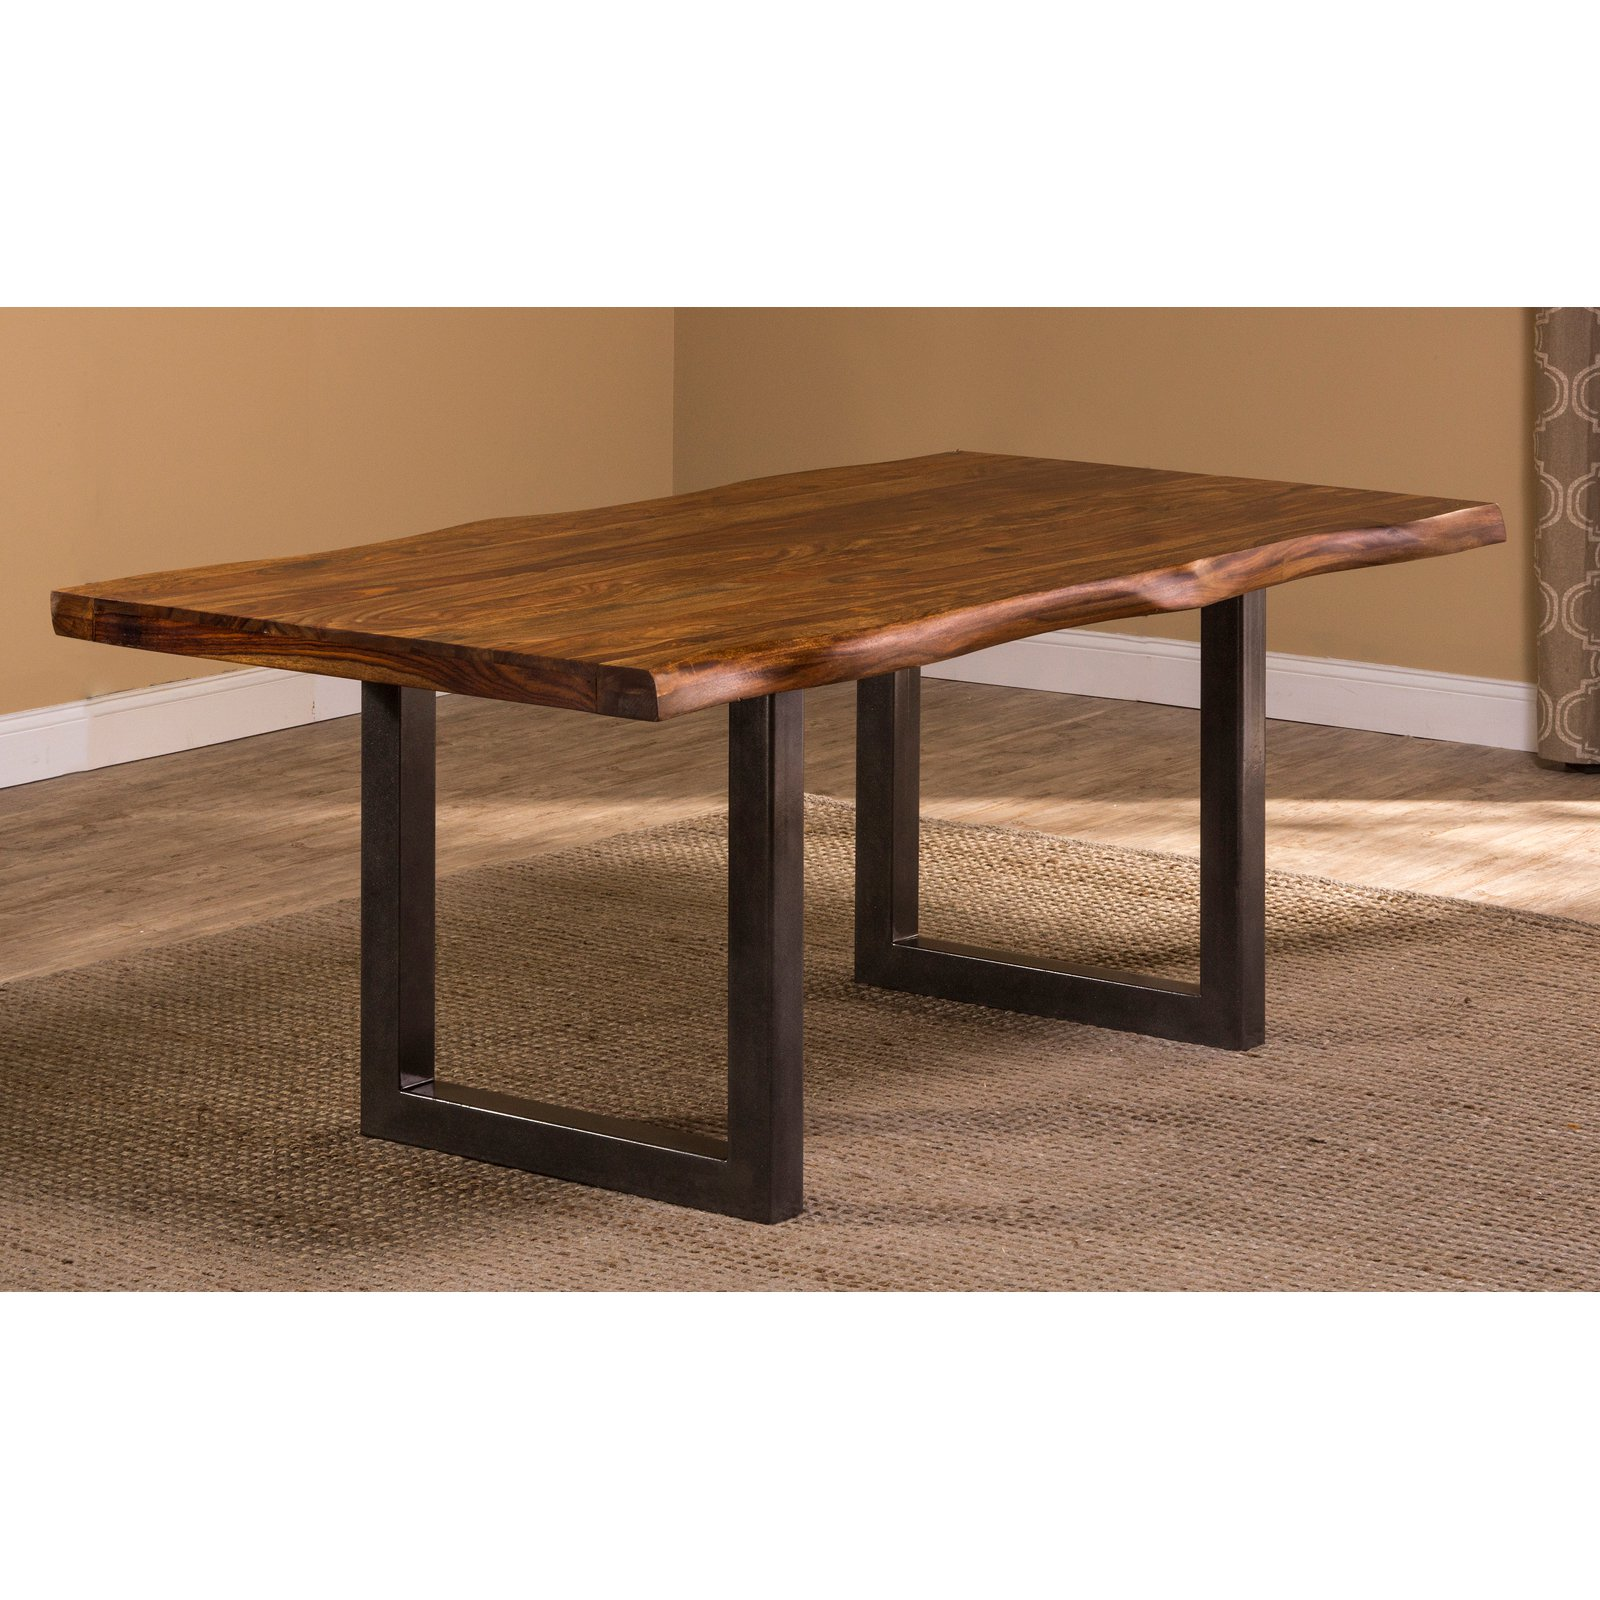 Hillsdale Furniture Emerson Rectangle Dining Table, Gray Sheesham